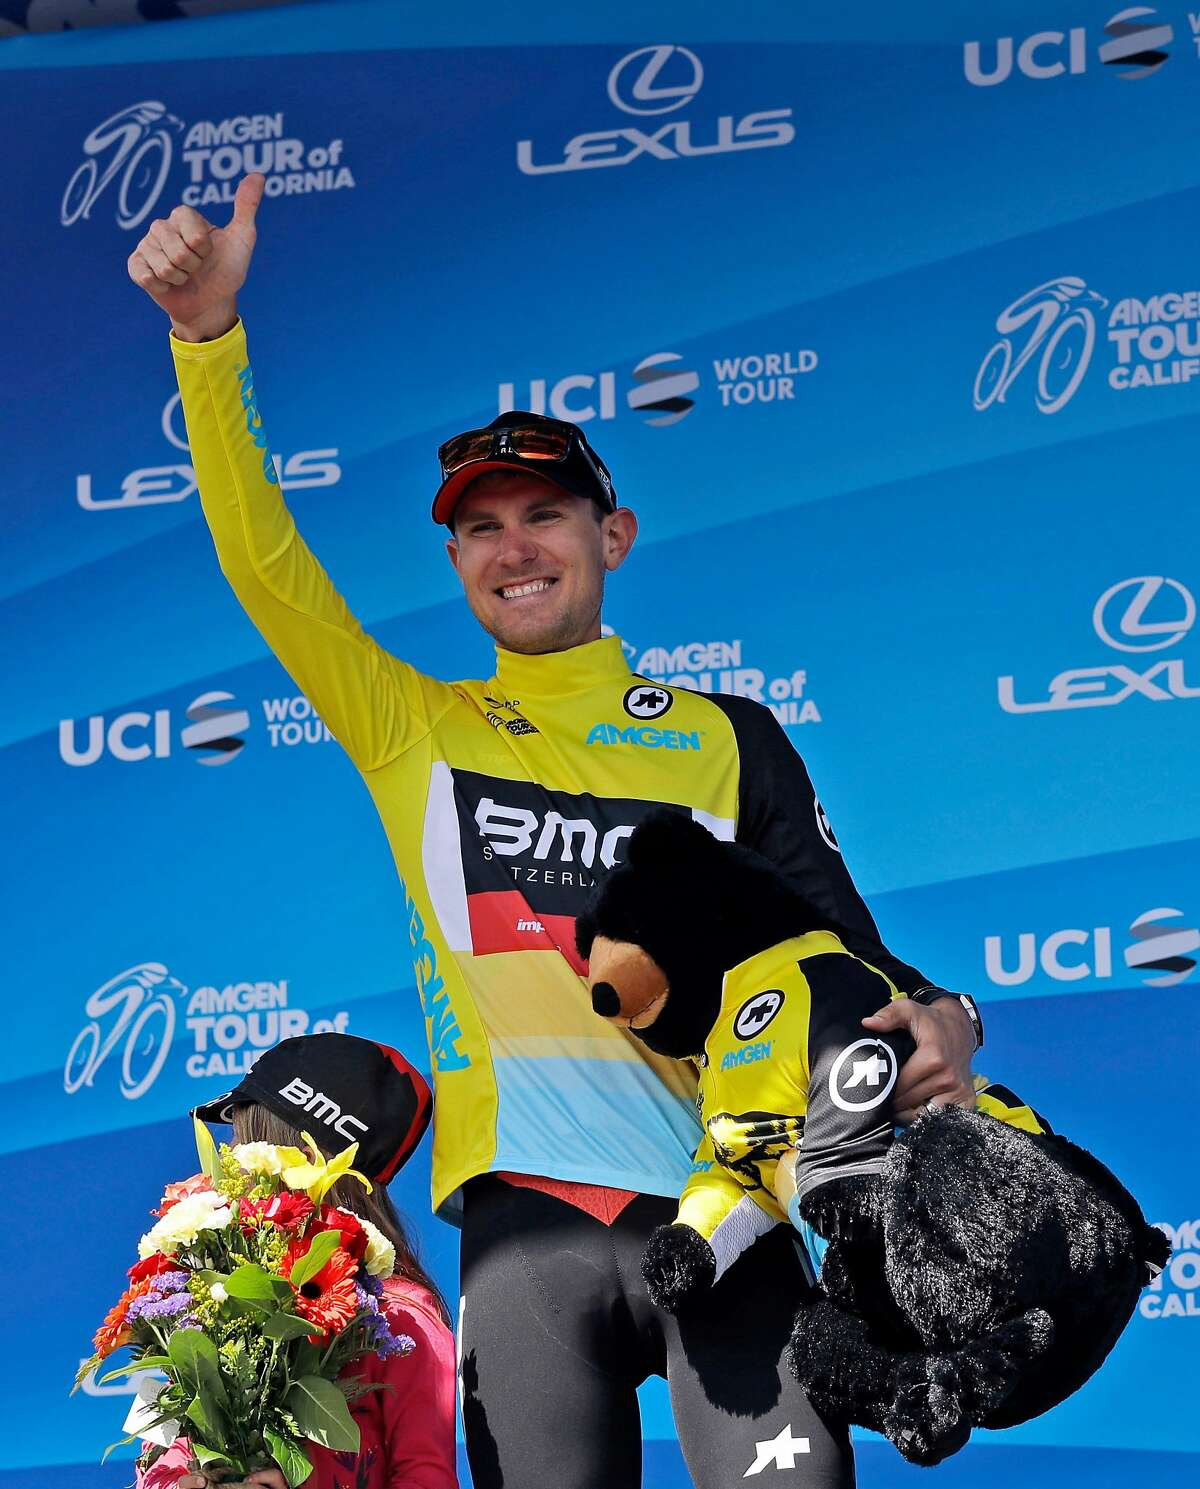 Tejay van Garderen celebrates on the podium after winning Stage 4, the individual time trial, of the Tour of California cycling race Wednesday, May 16, 2018, in Morgan Hill, Calif. (AP Photo/Marcio Jose Sanchez)